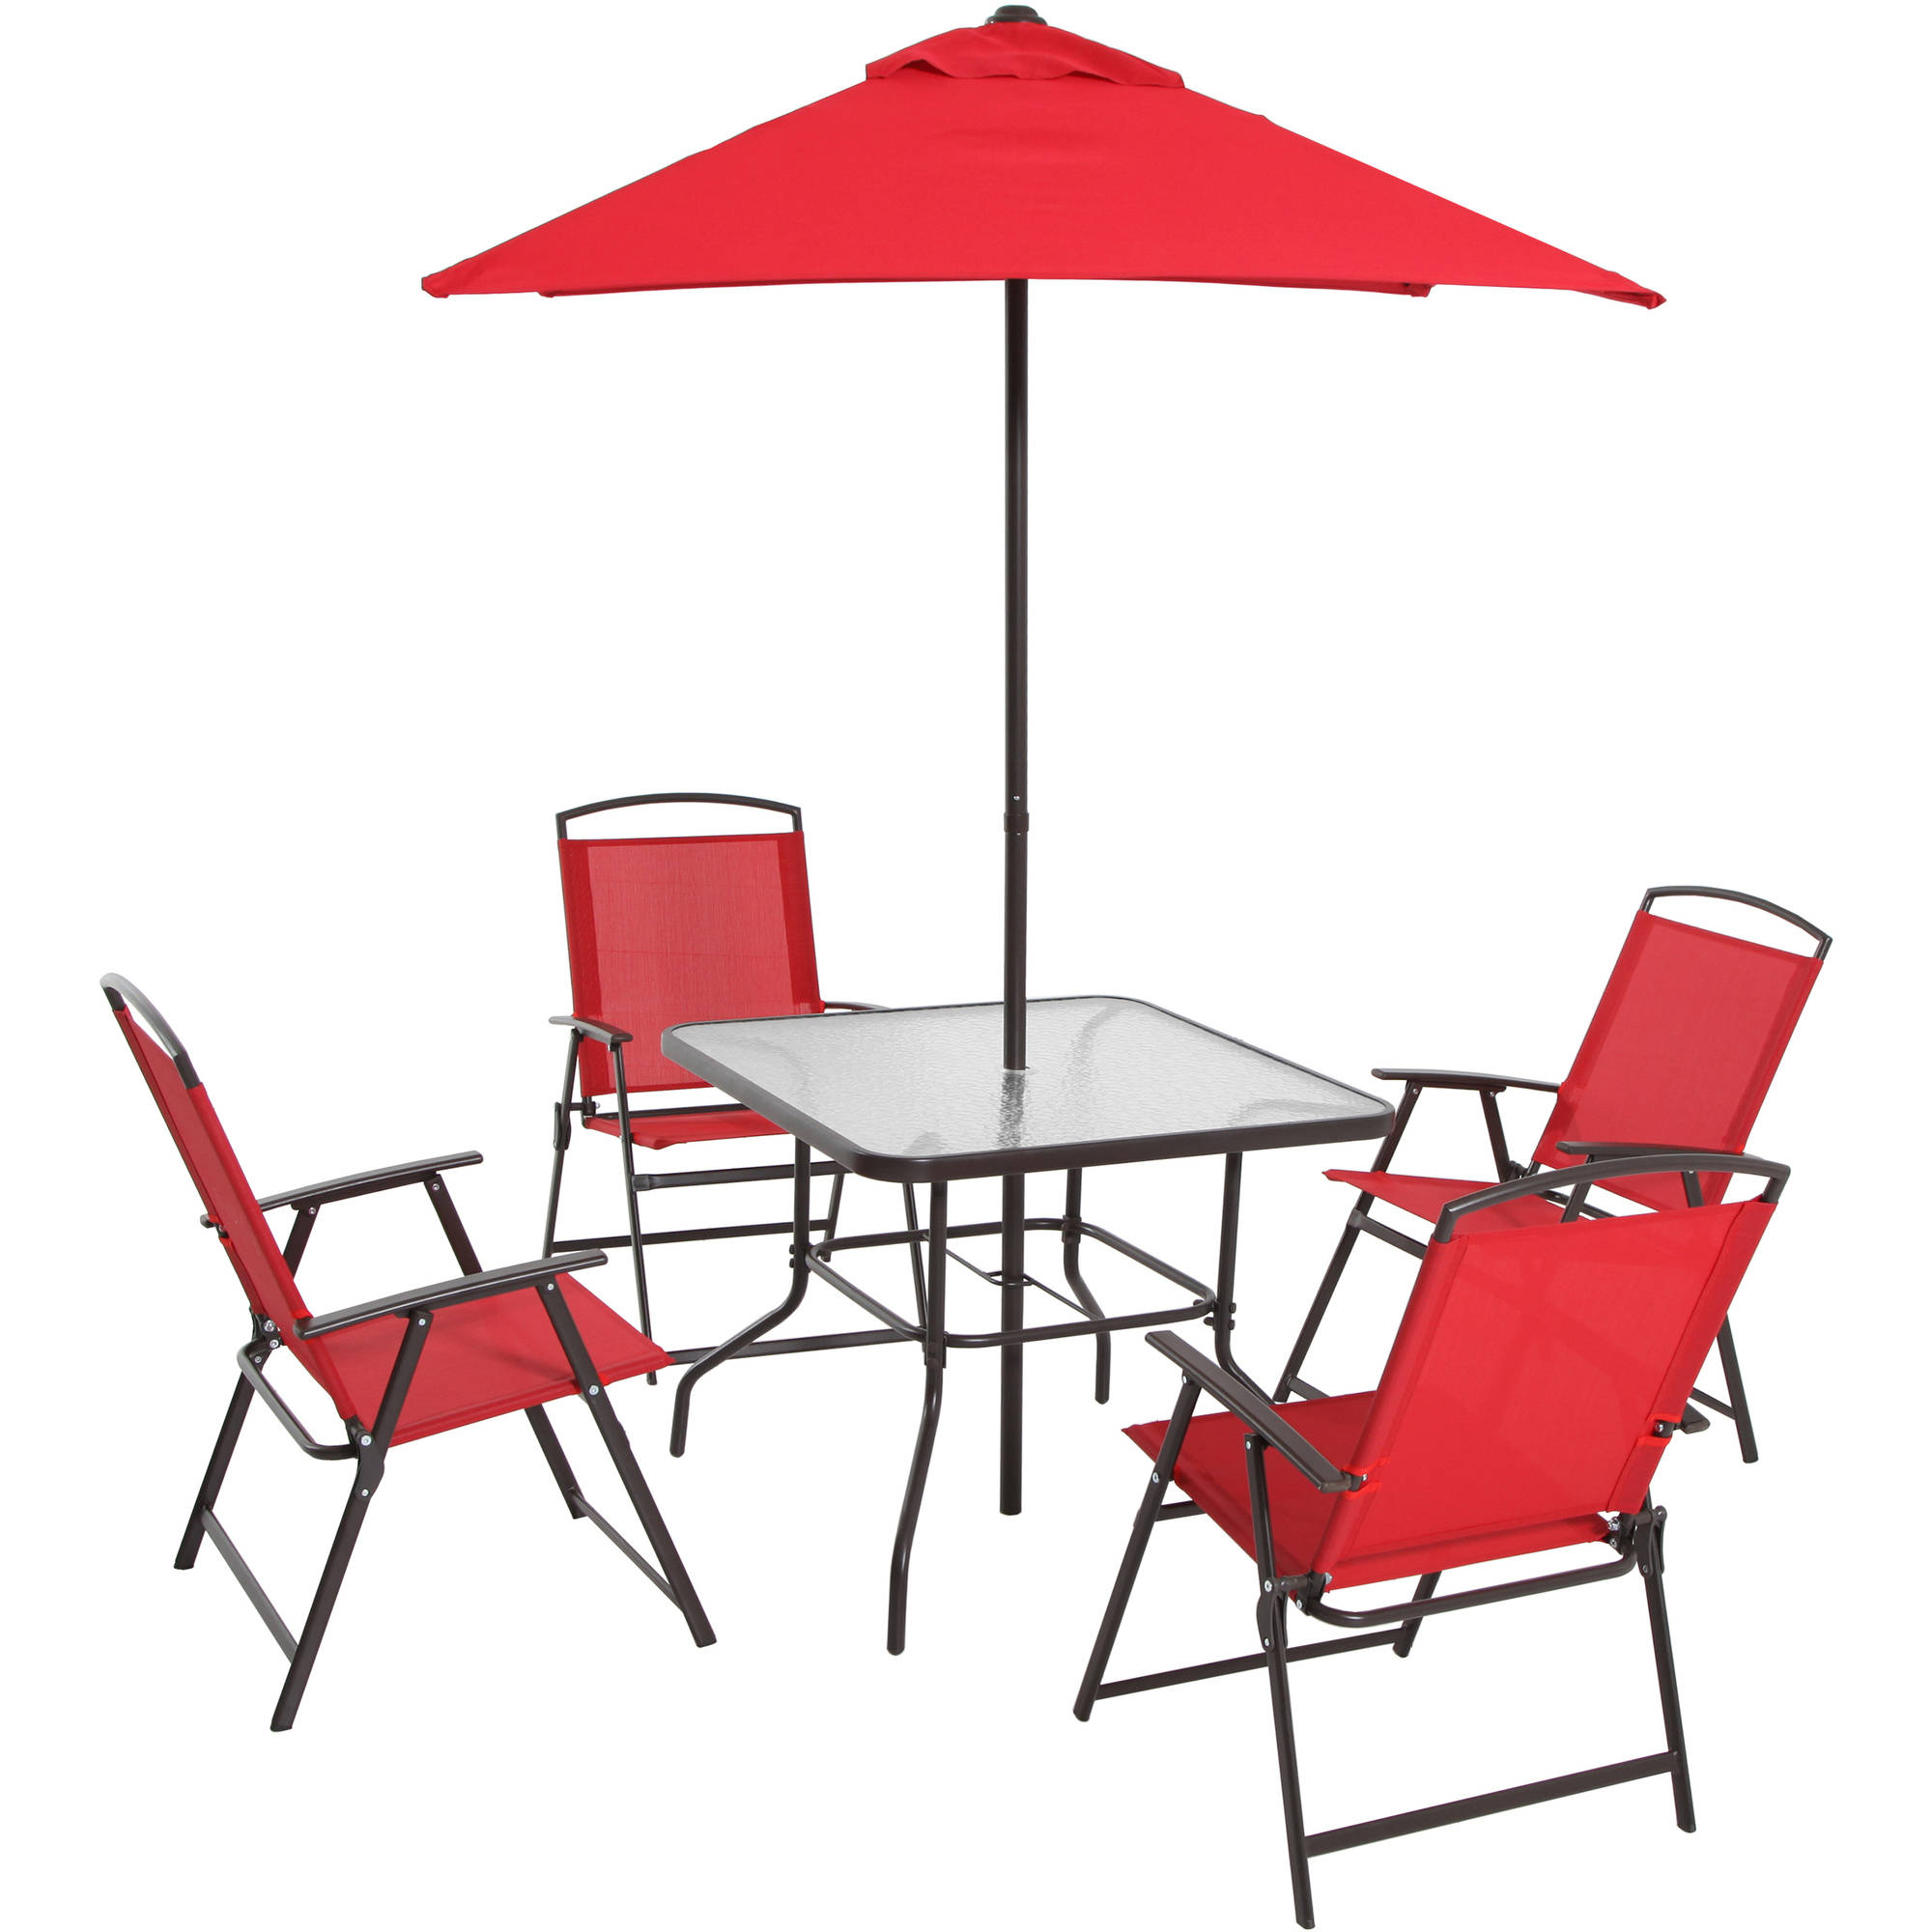 Garden Furniture 6 Chairs mainstays albany lane 6-piece folding dining set, multiple colors